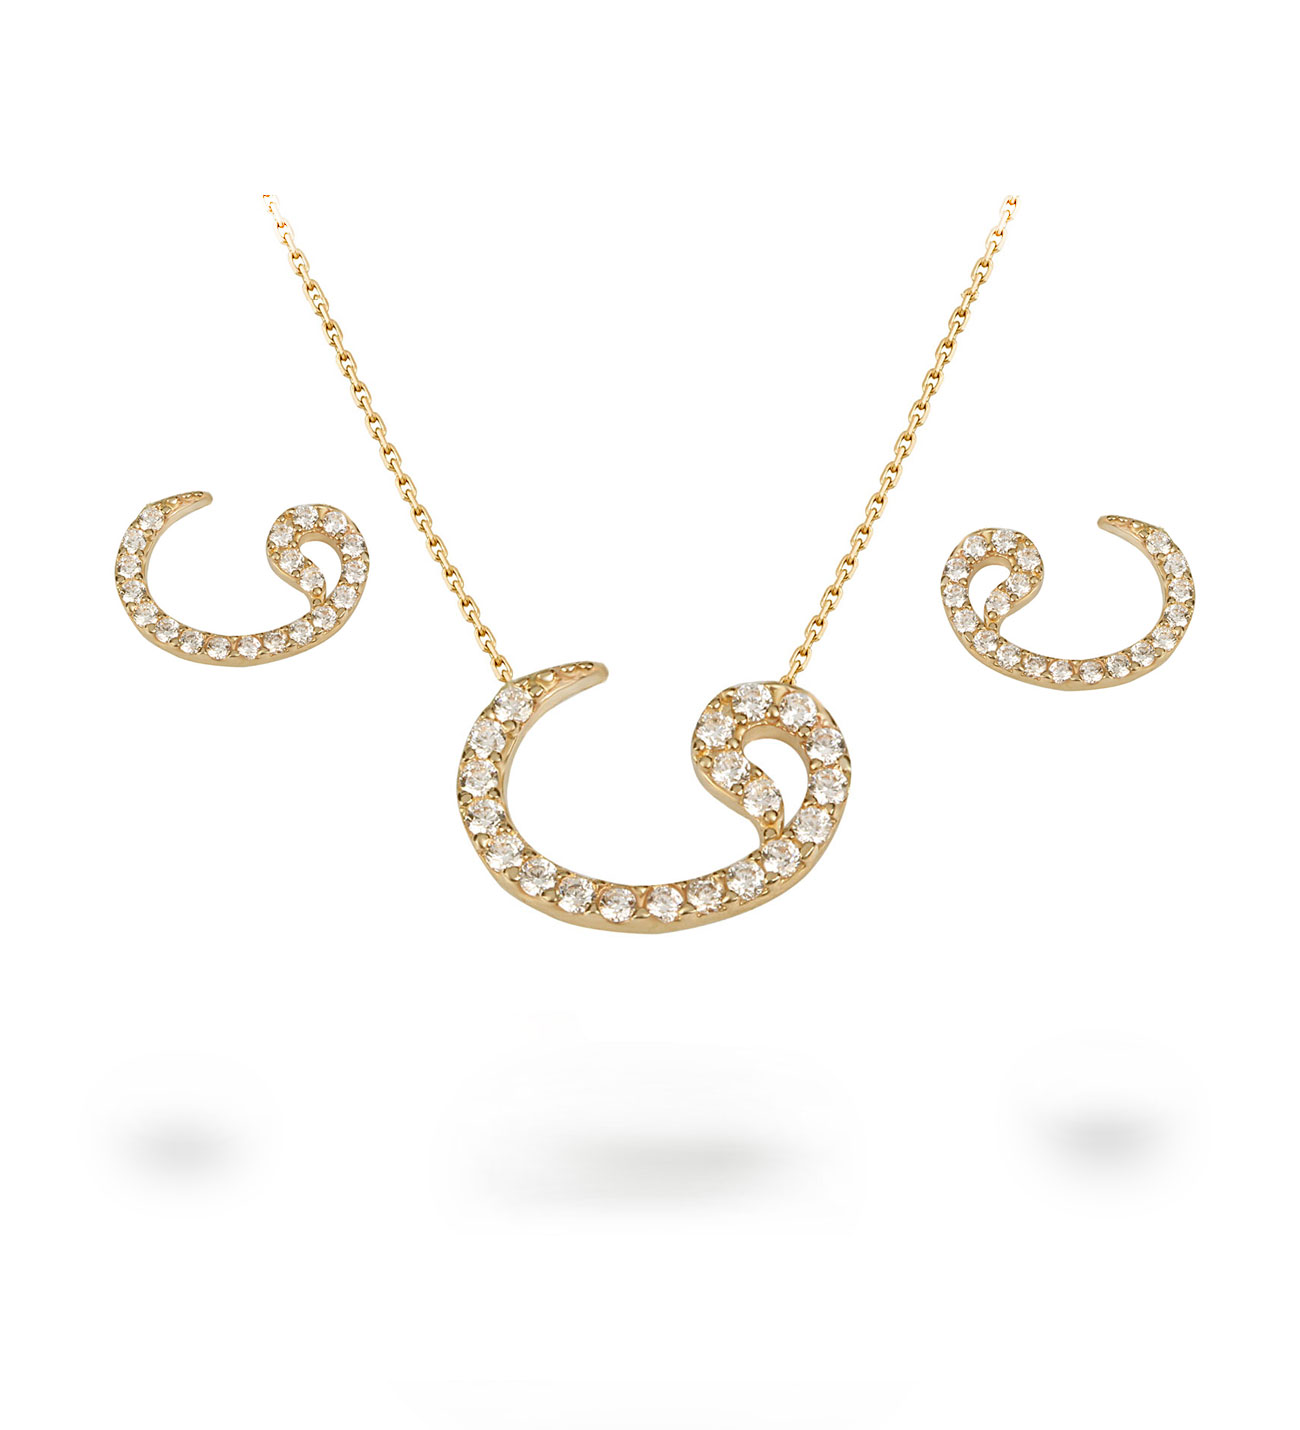 Women's Gemmed Vav Pendant Necklace & Earrings Set